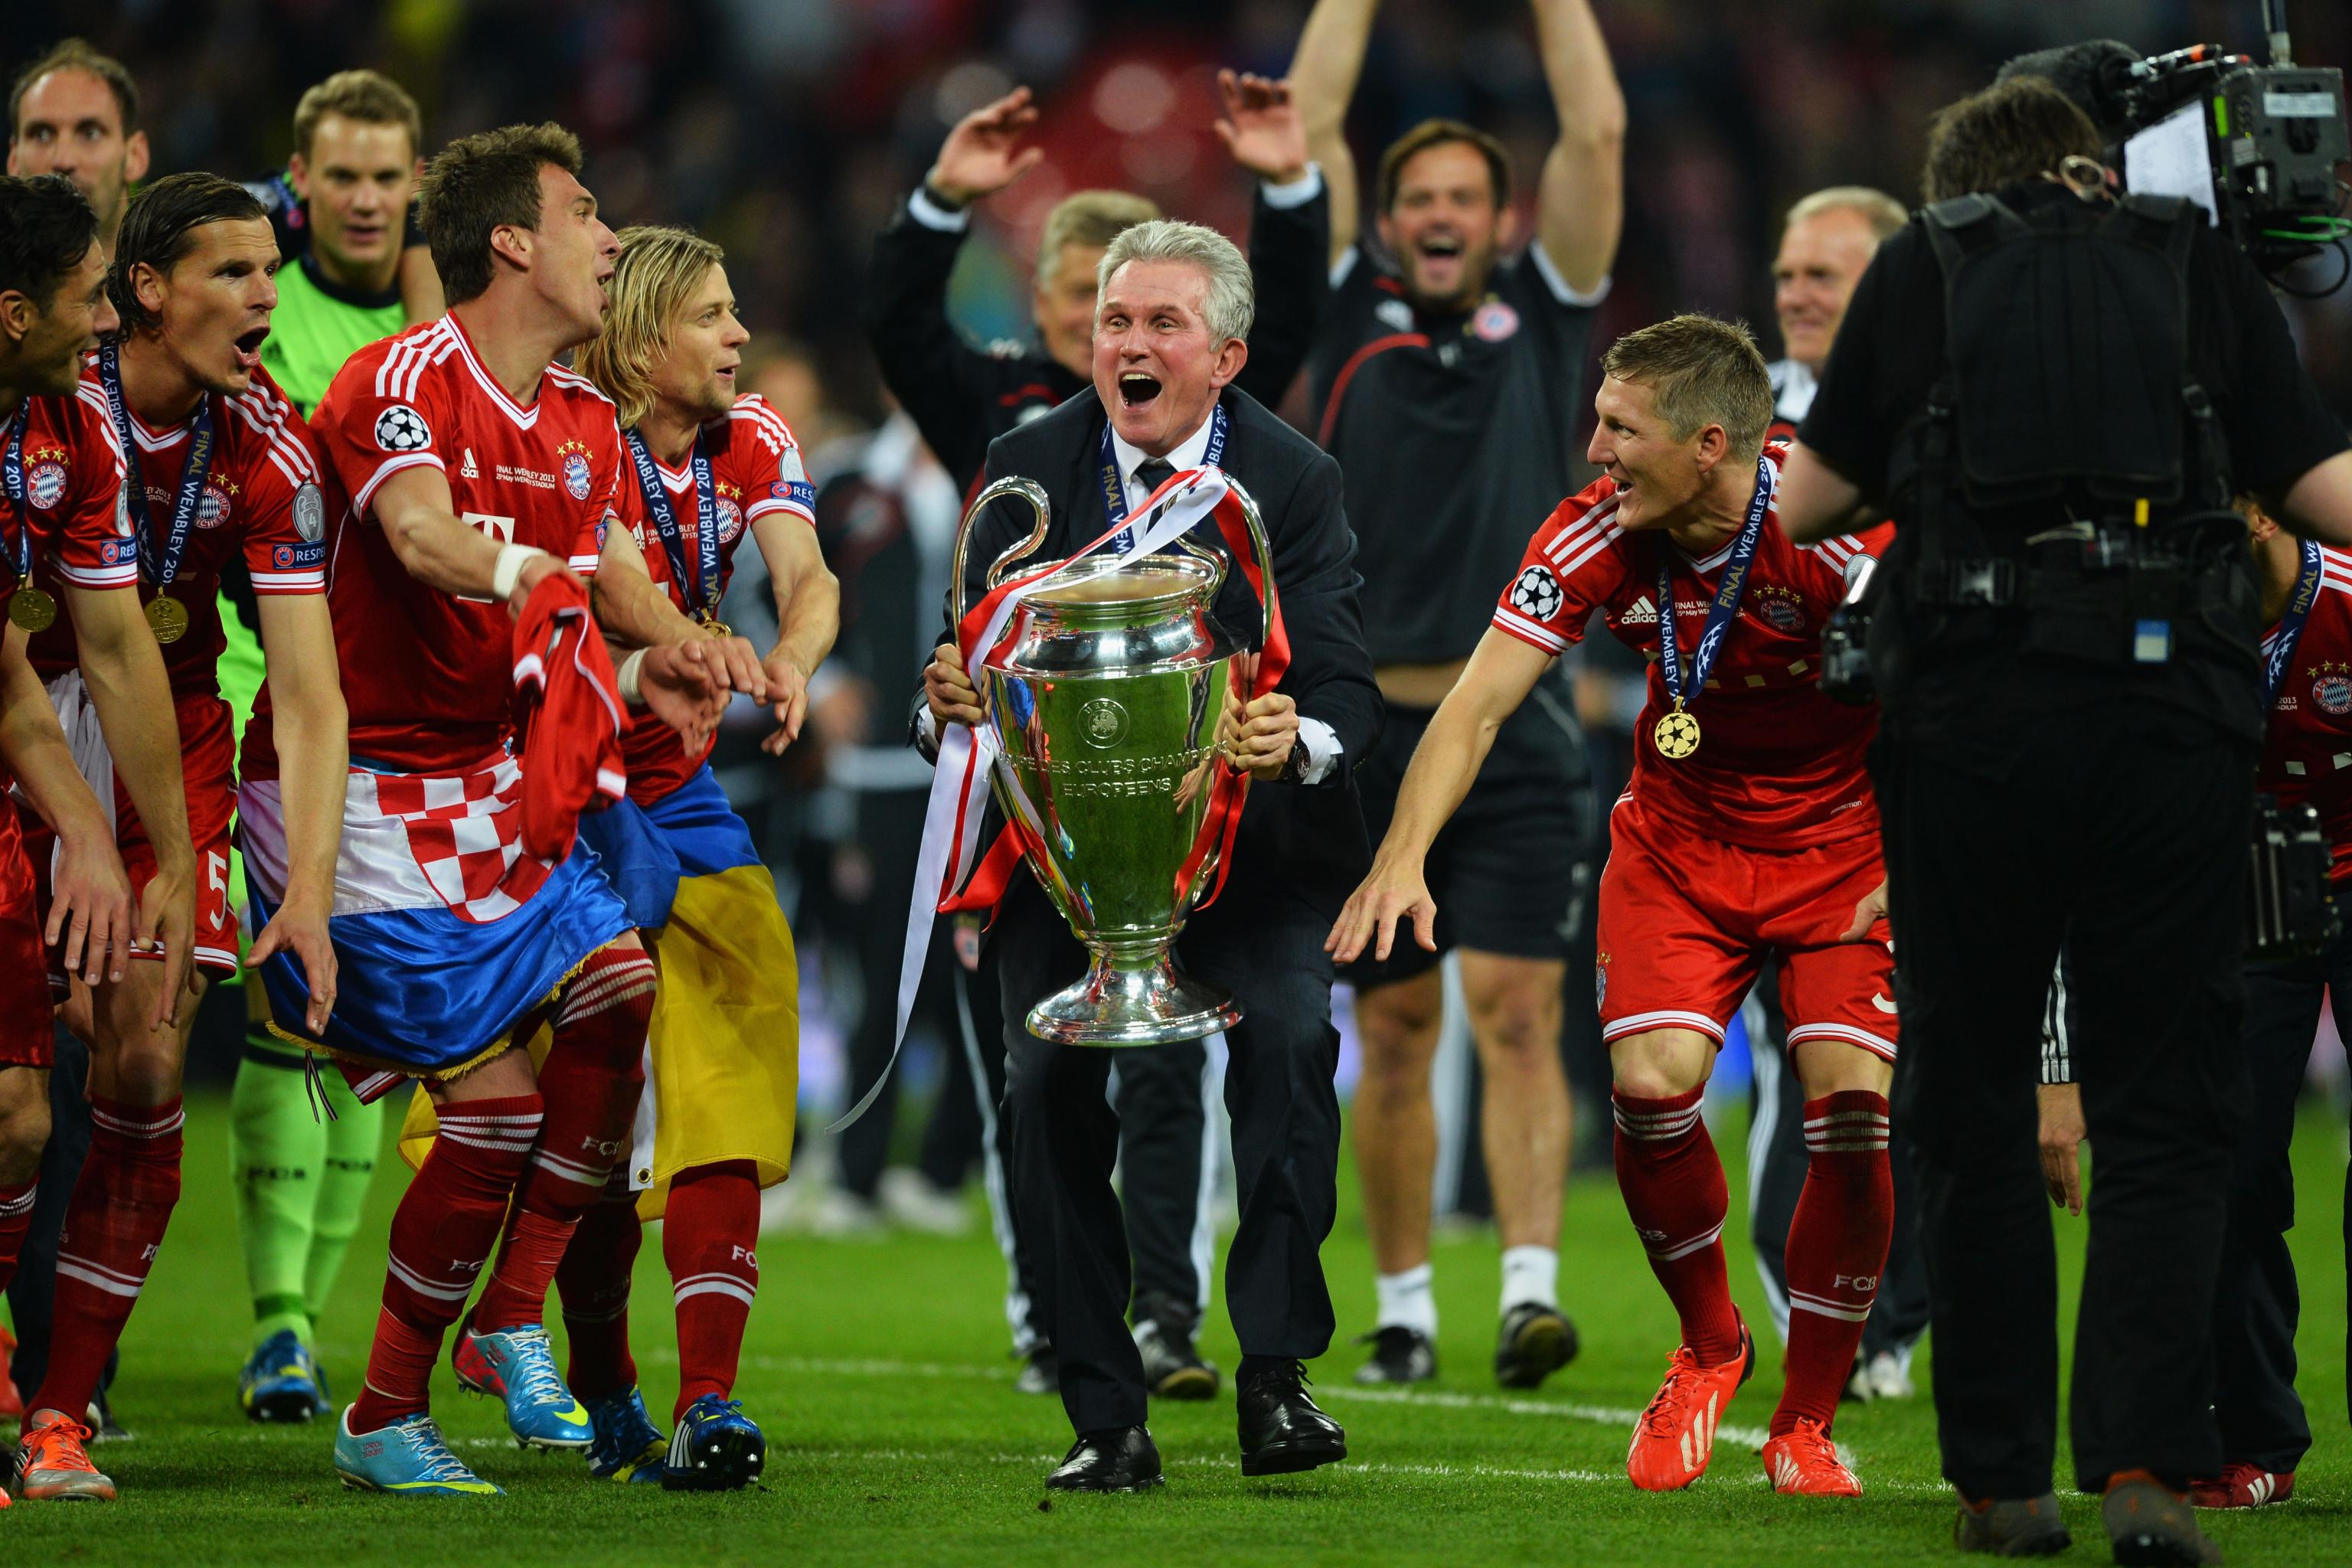 Jupp Heynckes Within Touching Distance of Greatness with Bayern ...